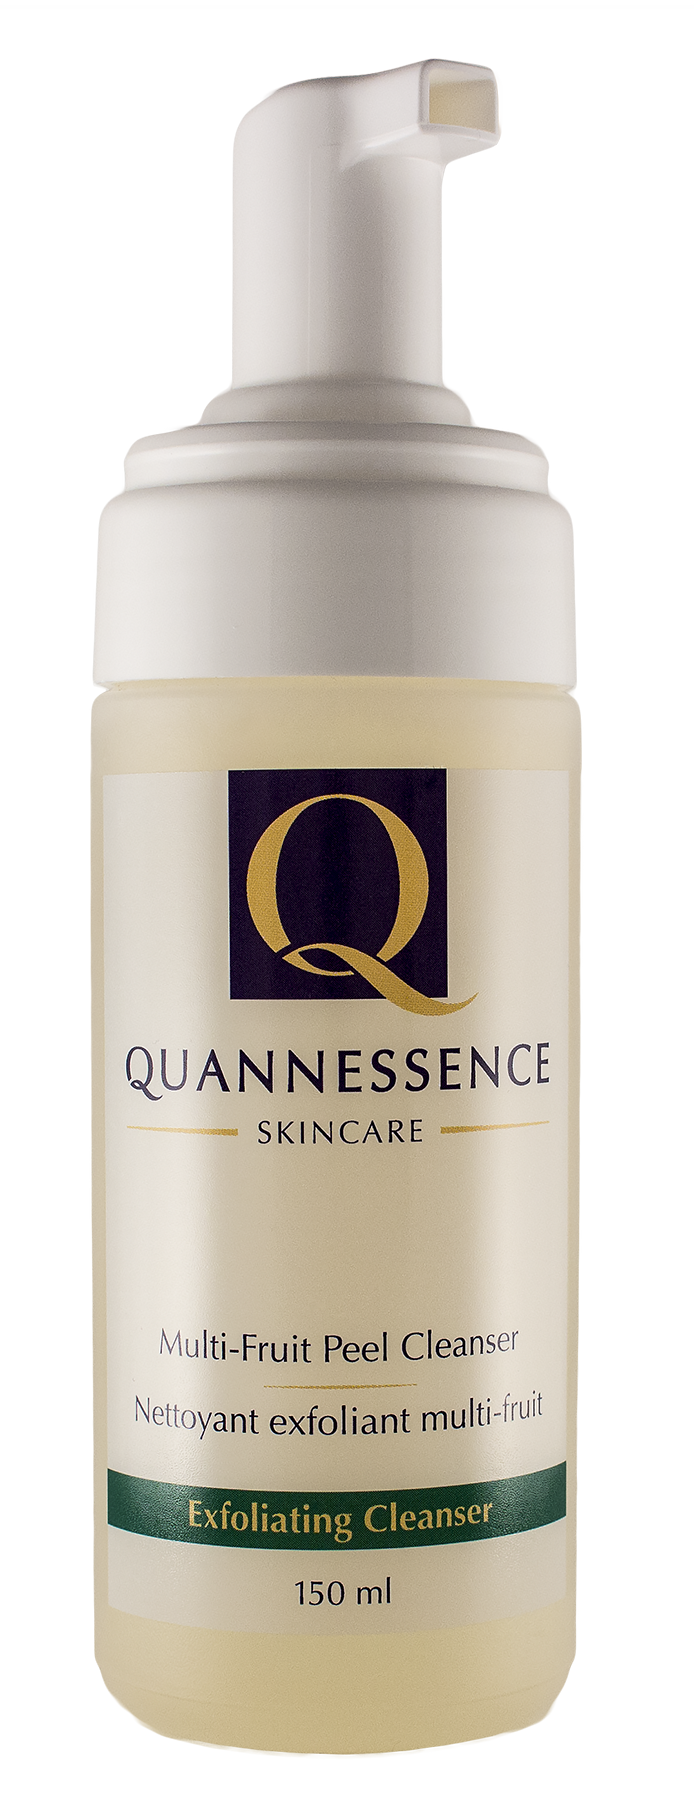 Quannessence Multi-Fruit Peel Cleanser (150 ml)